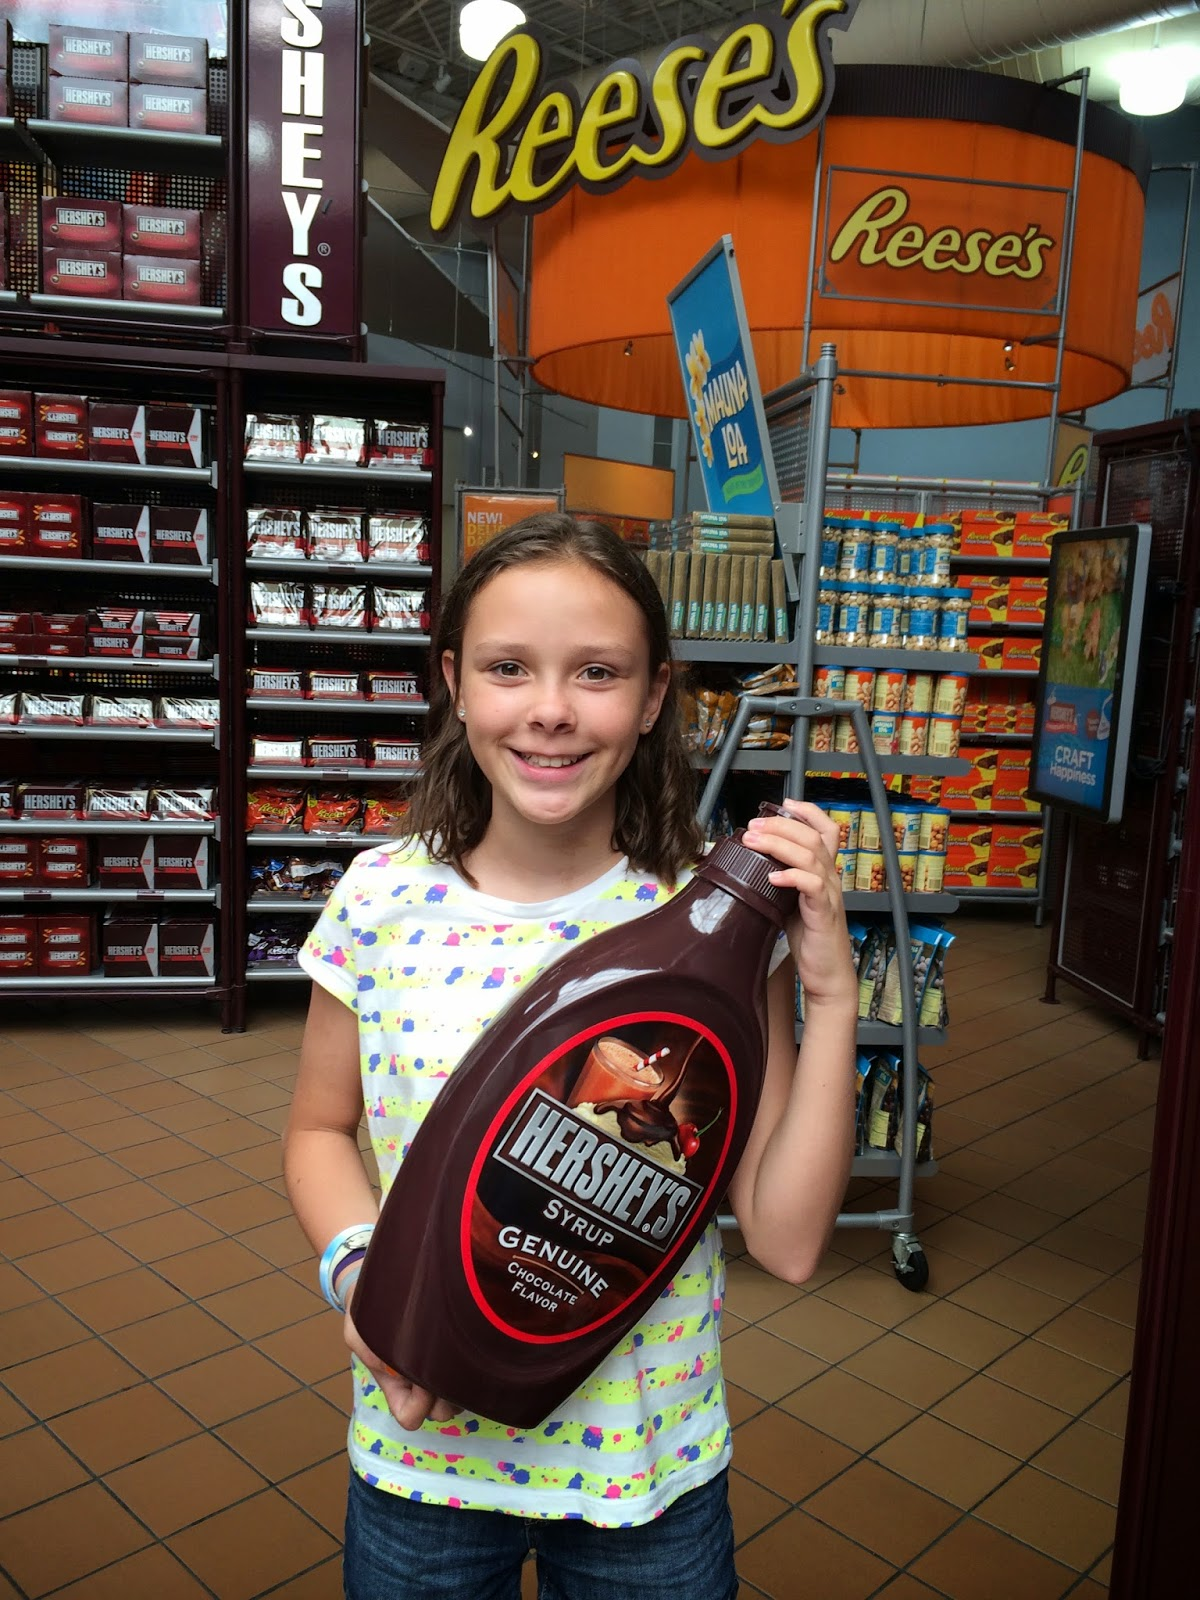 Hershey Park Chocolate Factory Tour Hours